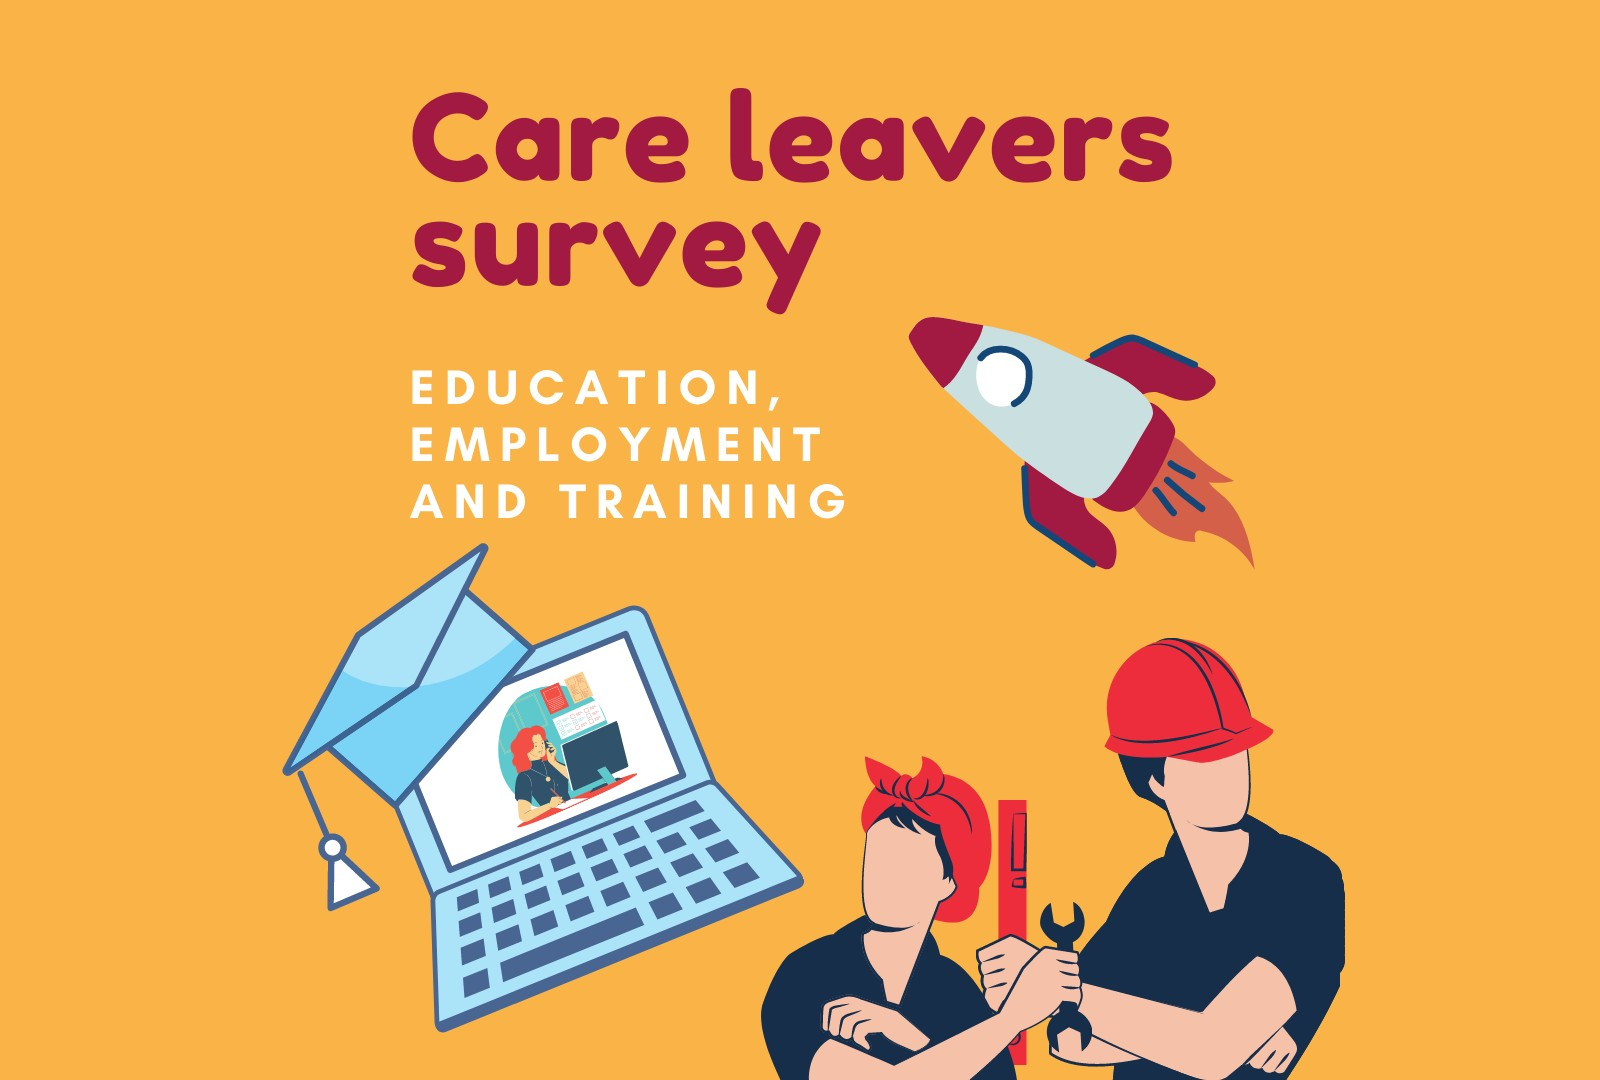 Education, employment, and training opportunities for care leavers